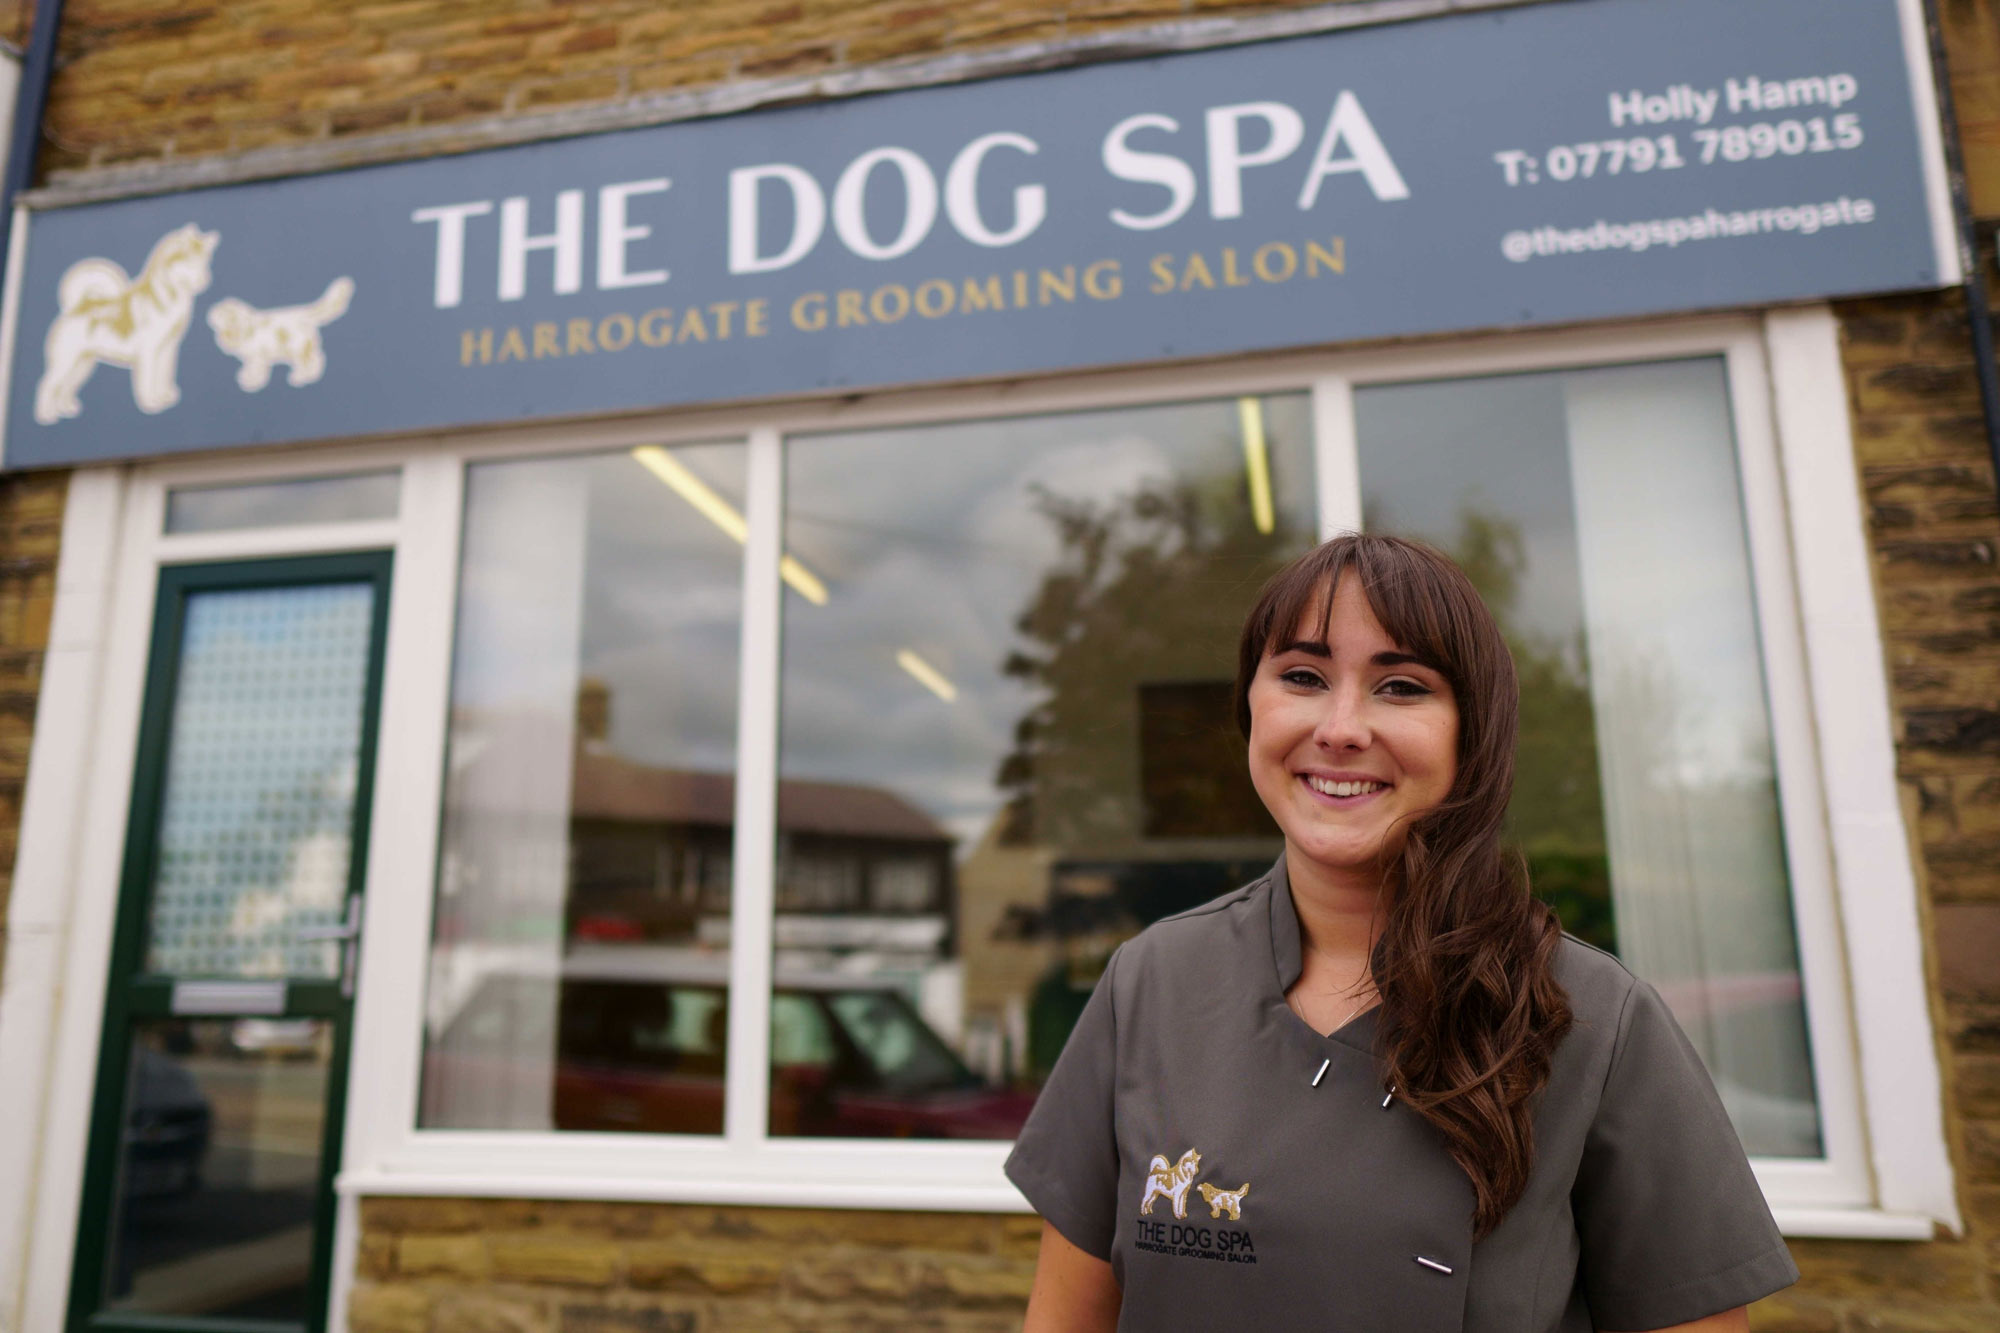 Holly Hamp has this week opened the Dog Spa in Harrogate